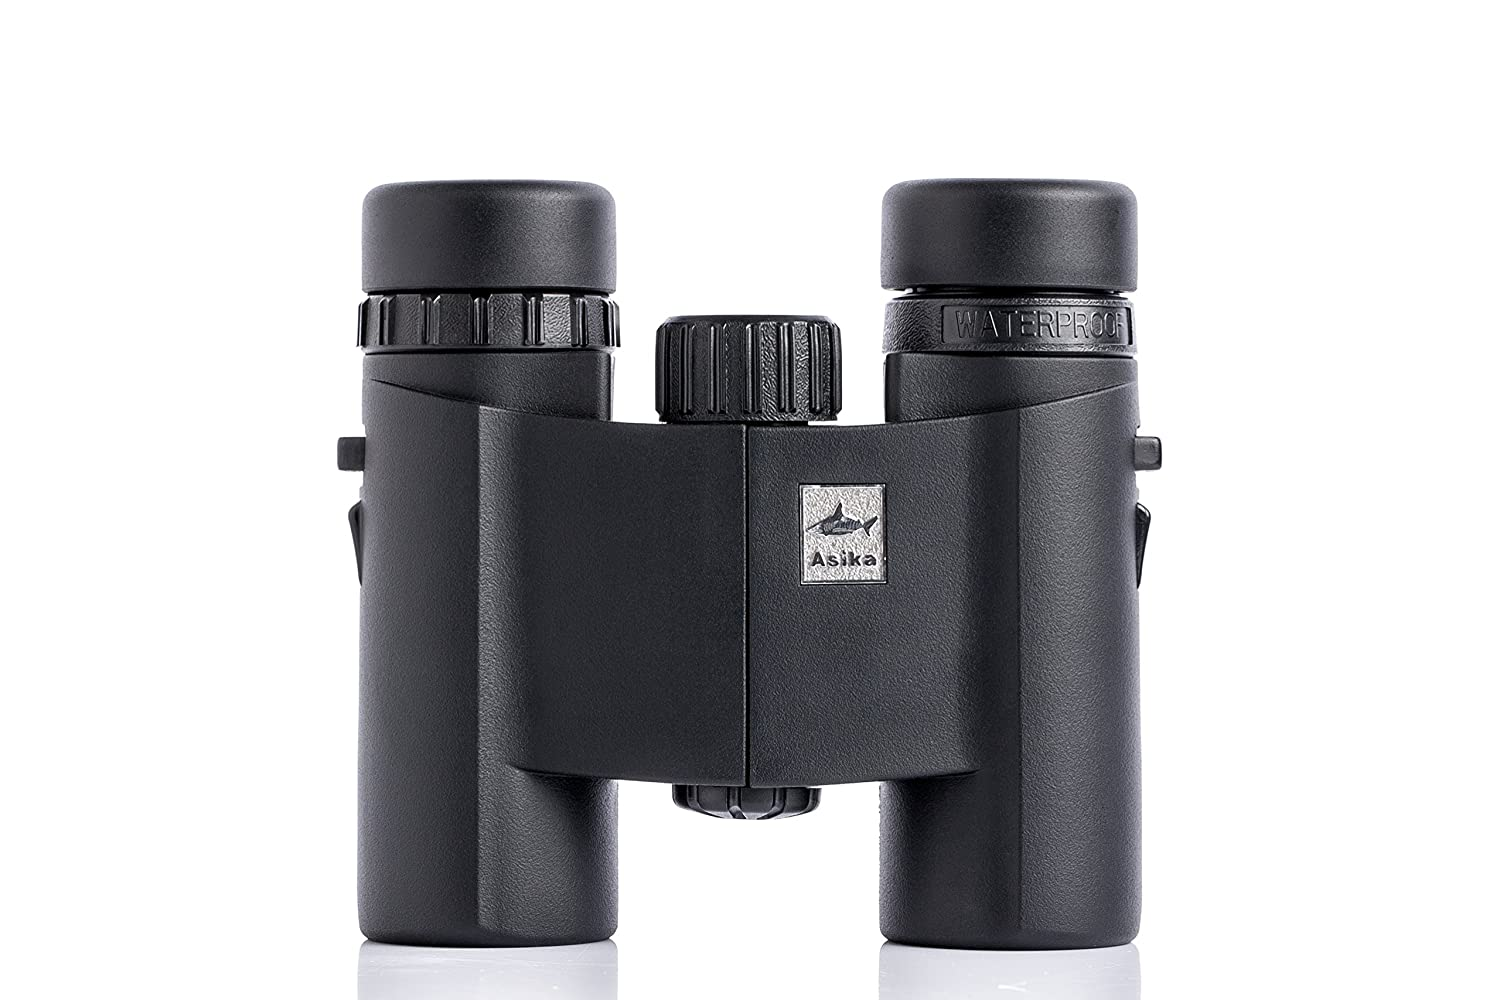 DAJICHENG Binoculars, Asika Optics Compact Bird Watching telescope 8 X 25 Mini Pocket with Case, Roof Prism For Shooting, Hunting, Hiking